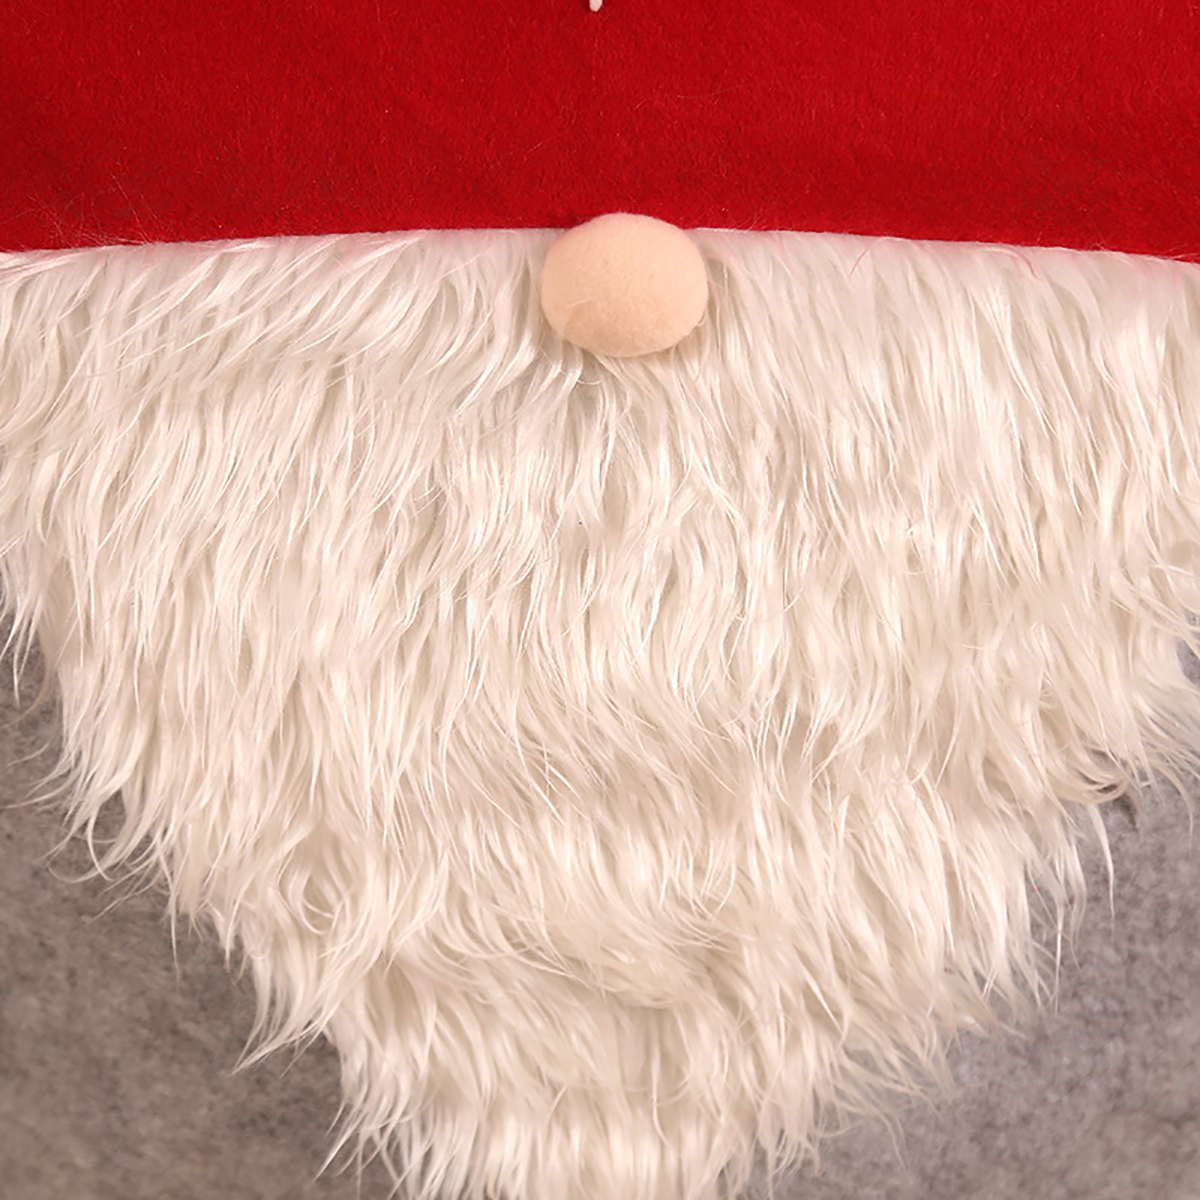 Happy New Year Merry Christmas Santa Claus Cap Table Chair Covers Red Hat Back Chair Covers Christmas Decorations for Home